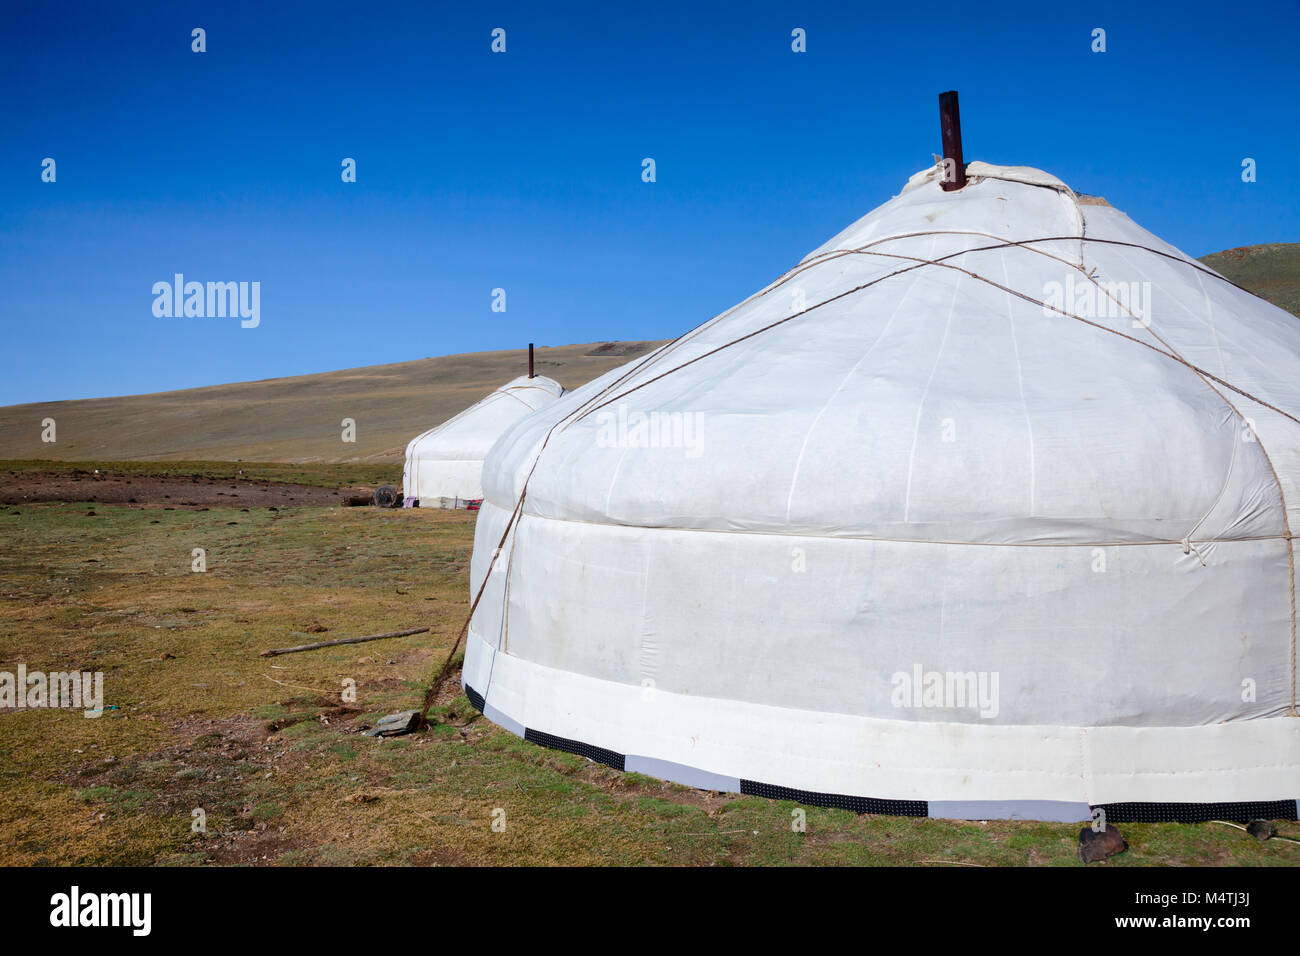 Traditional Mongolian portable round tent ger covered with white outer cover in Altai Mountains of Western Mongolia - Stock Image